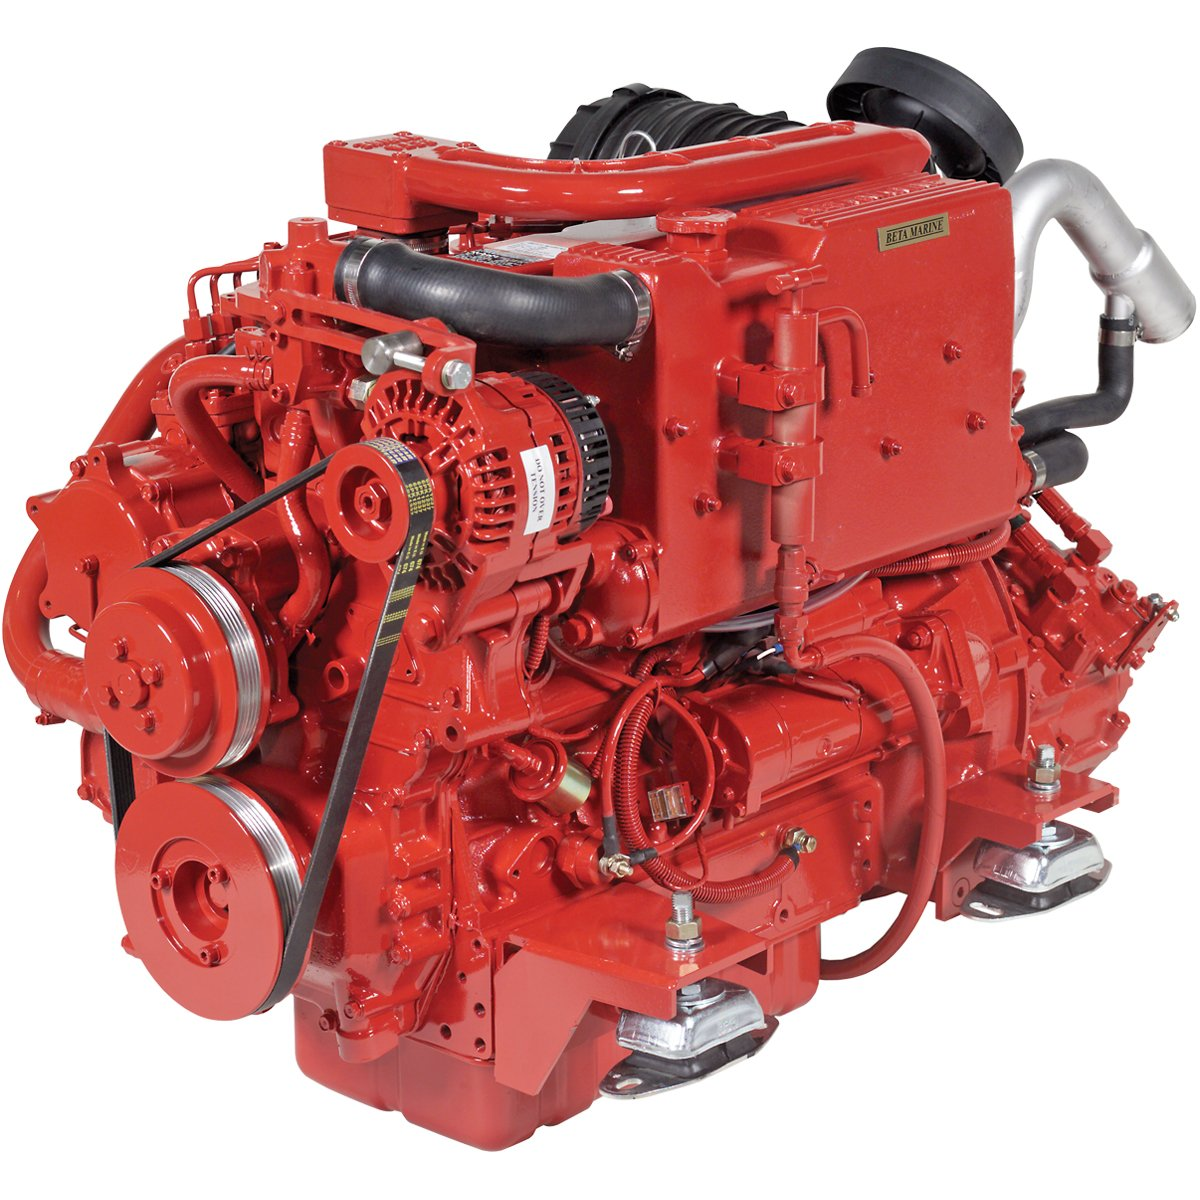 Beta Marine USA - marine diesel propulsion engines - Beta 75 heat exchanger engine